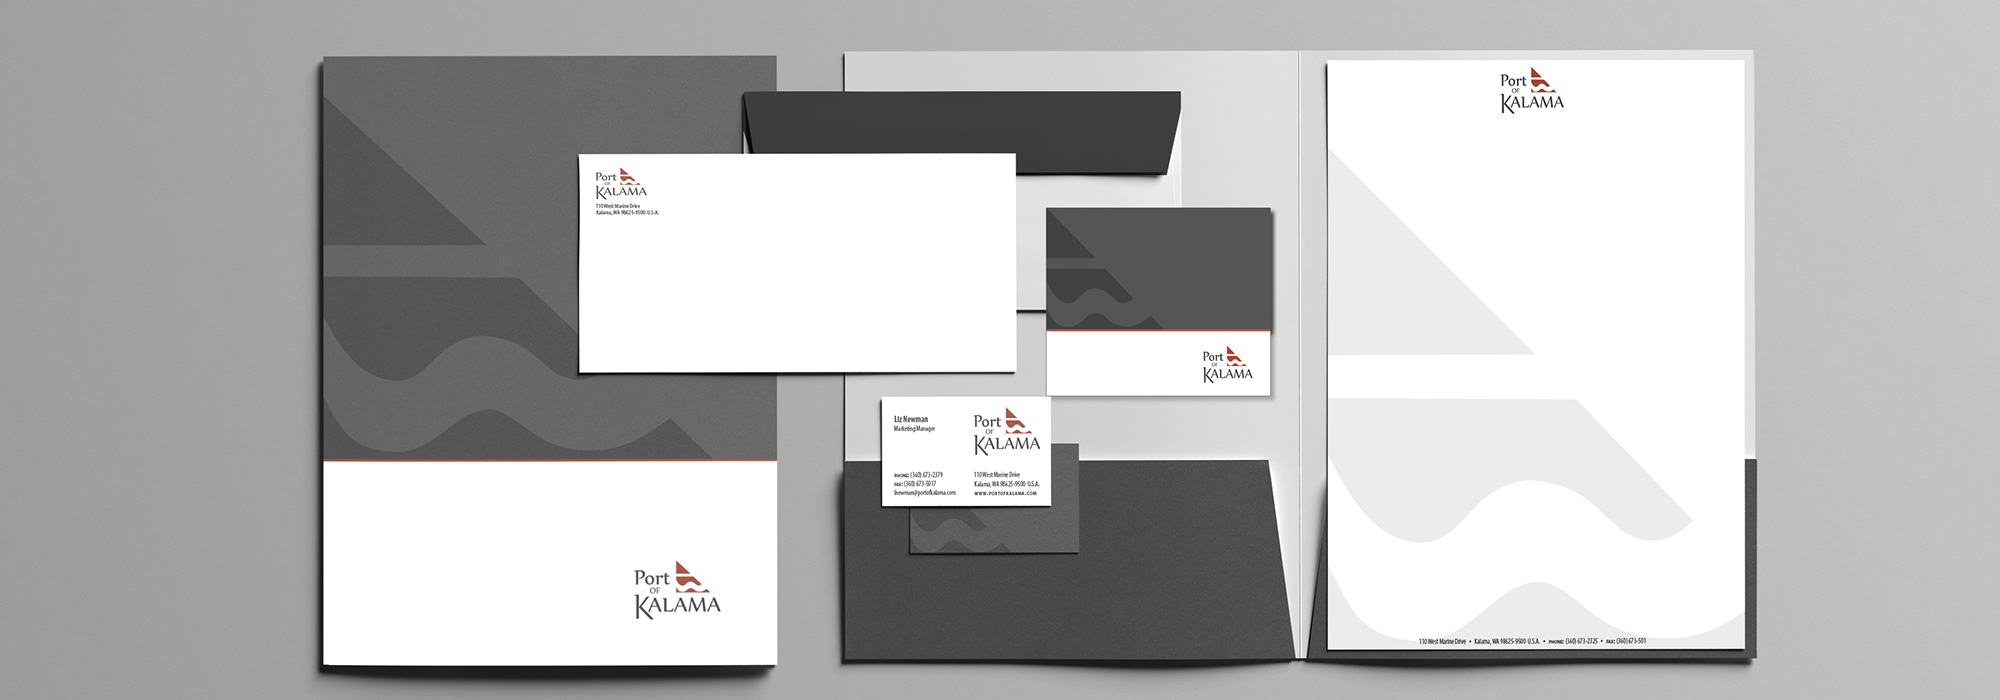 Port of Kalama identity design